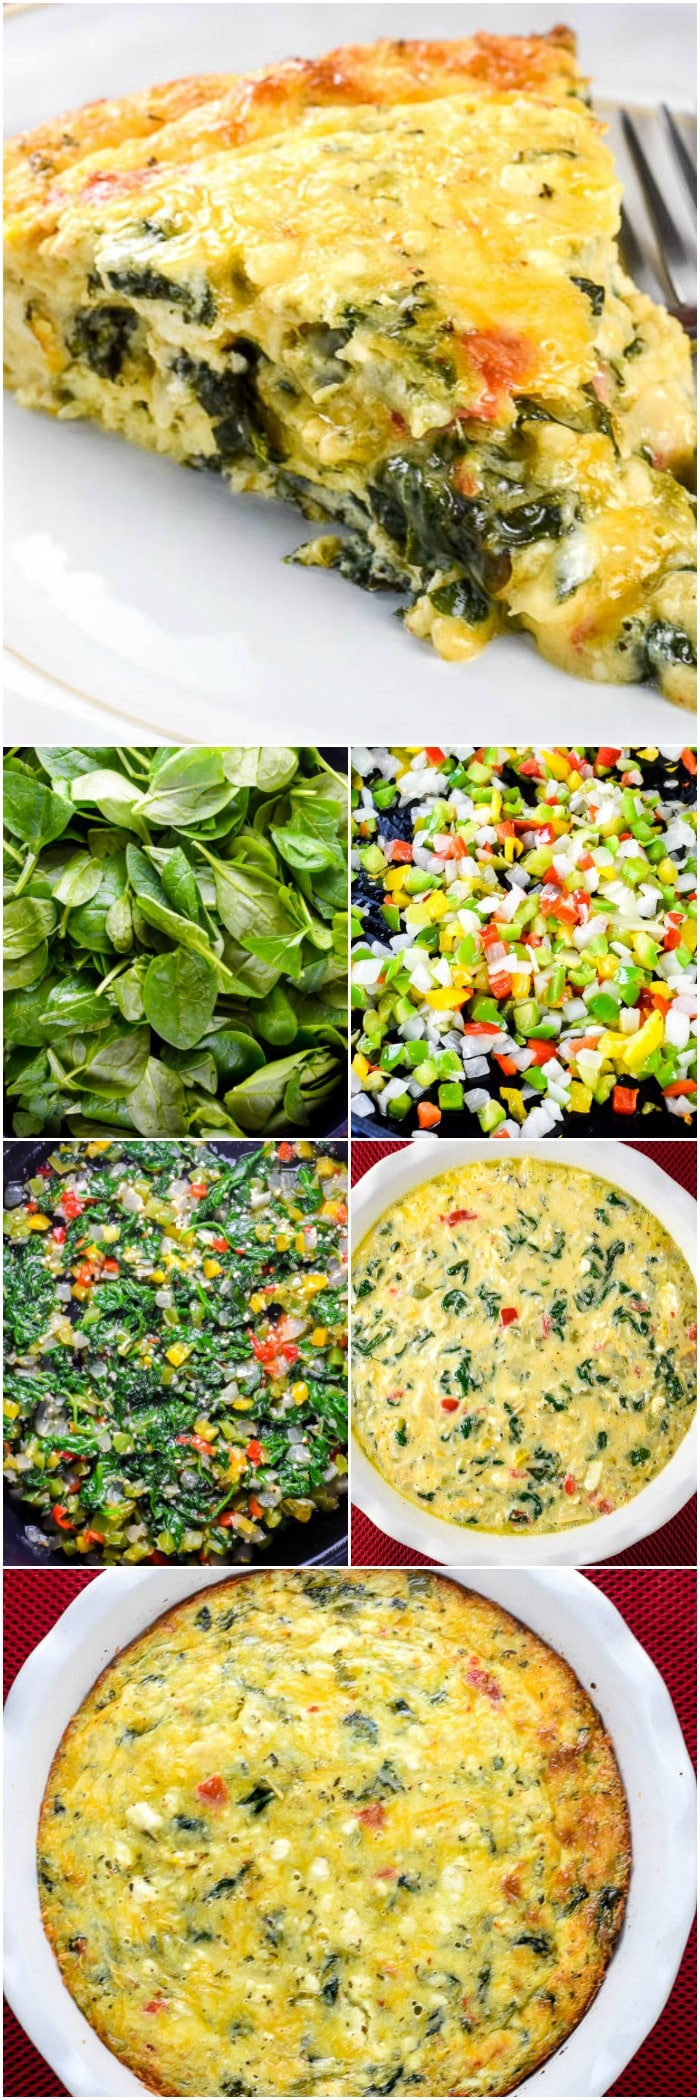 This low carb Crustless Spinach Quiche is a creamy, cheesy egg breakfast casserole loaded with spinach and vegetables, Greek Seasoning, and feta cheese, which makes an easy and delicious gluten free breakfast! #Breakfast #Brunch #CrustlessQuiche